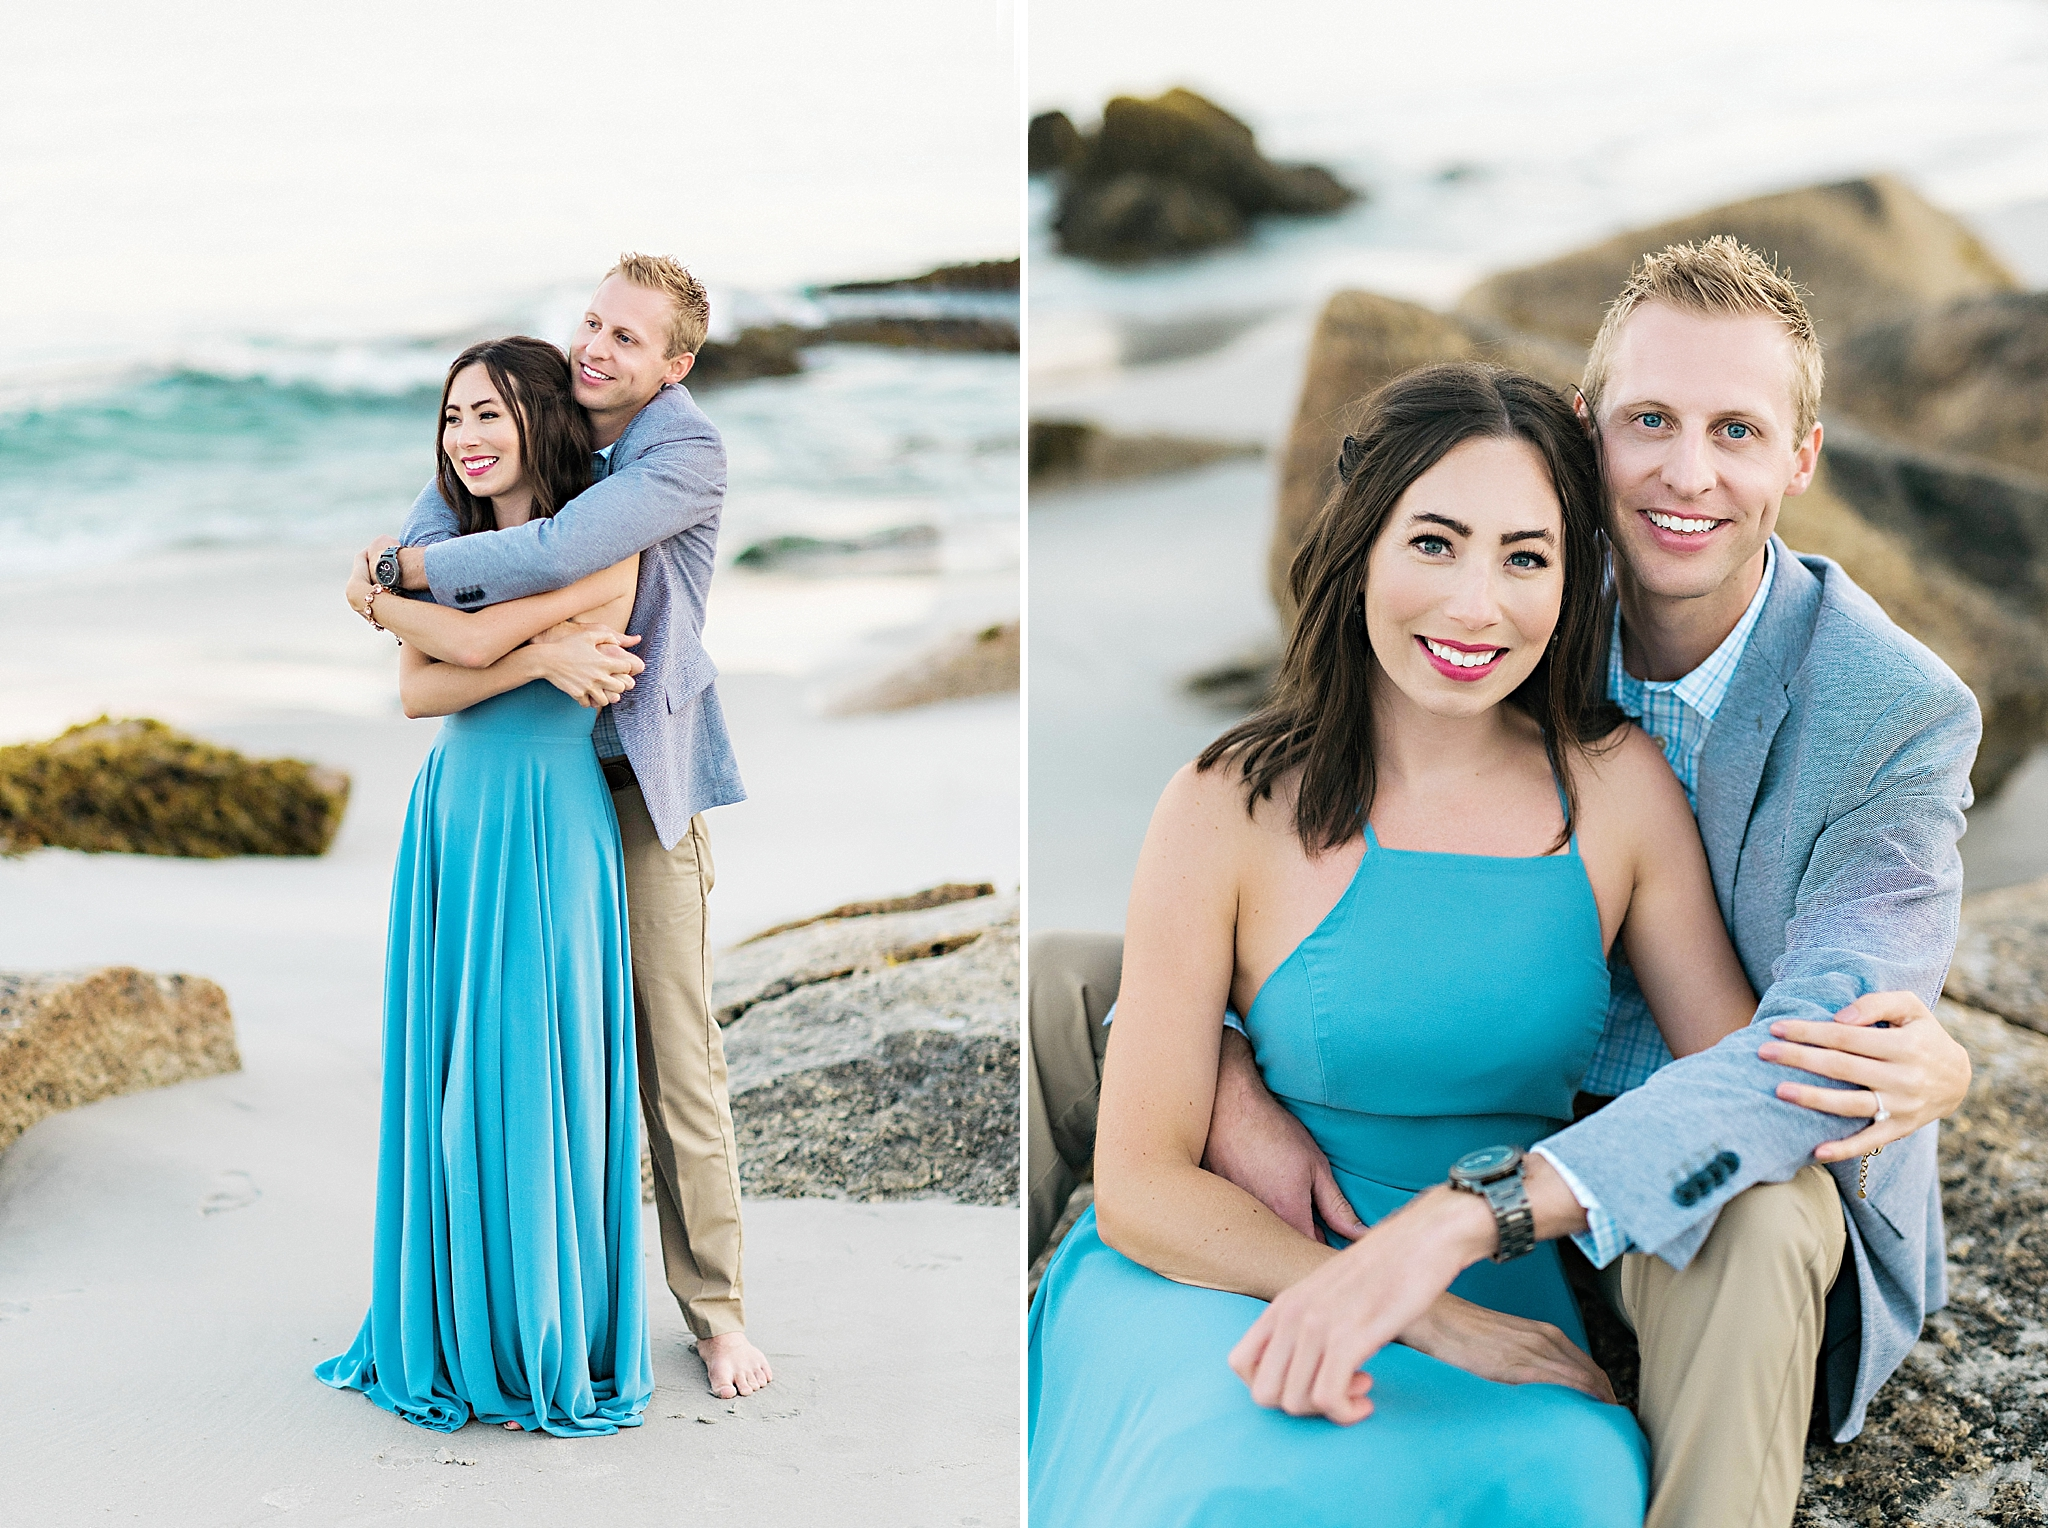 Romantic Seaside Beach Engagement Shoot in Lulu's long flowy maxy dress_036.jpg